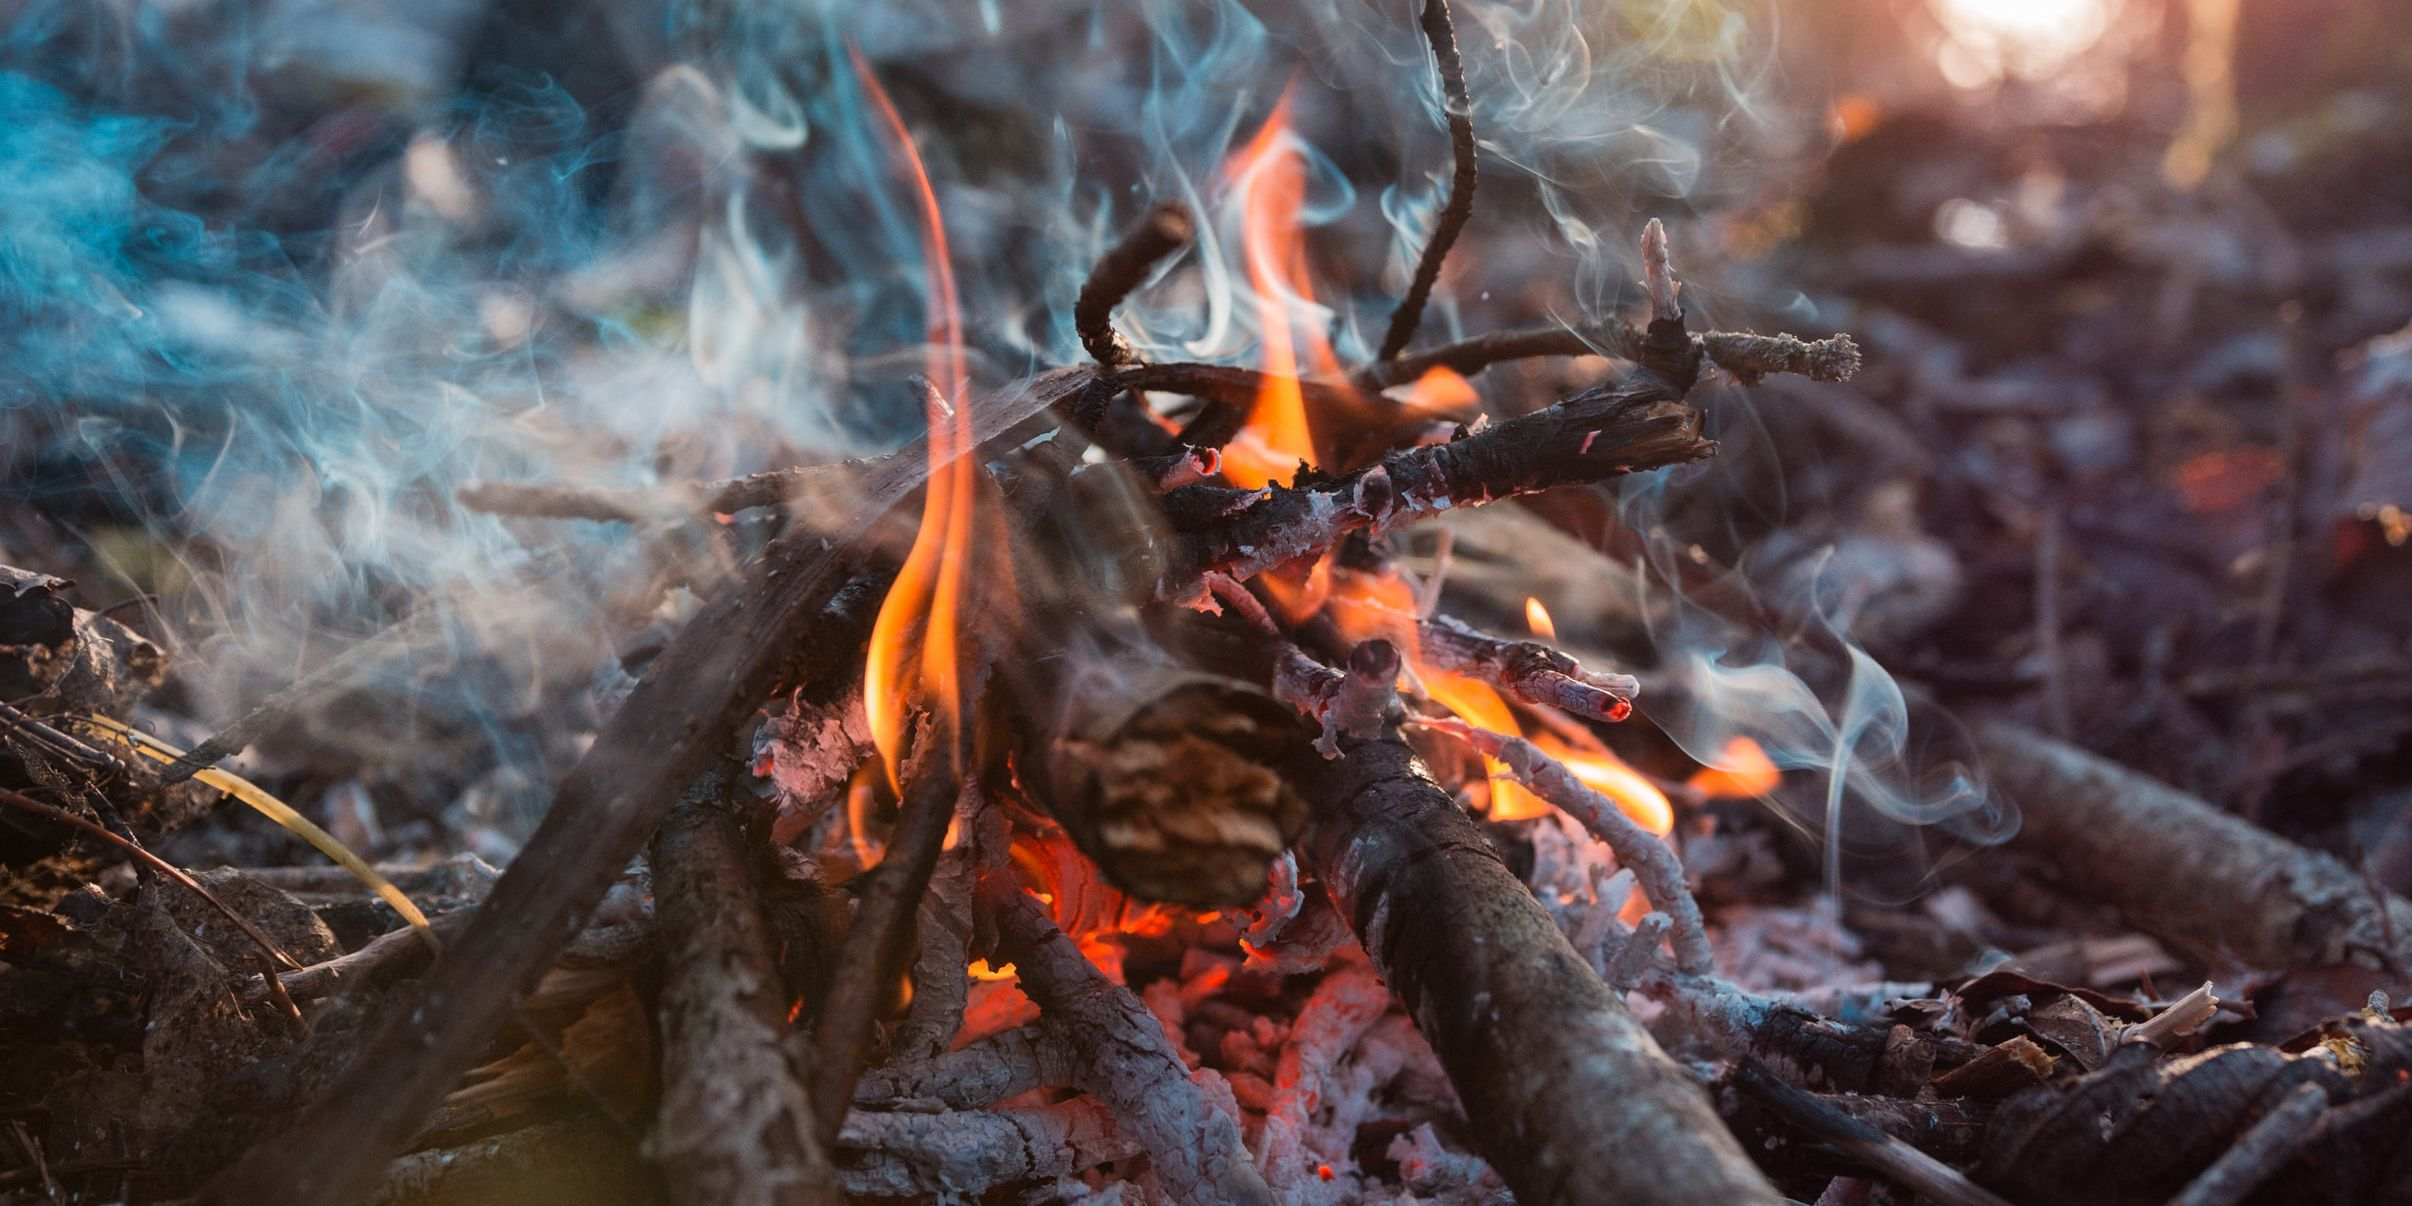 La. state fire marshal issues statewide burn ban amid COVID-19 pandemic